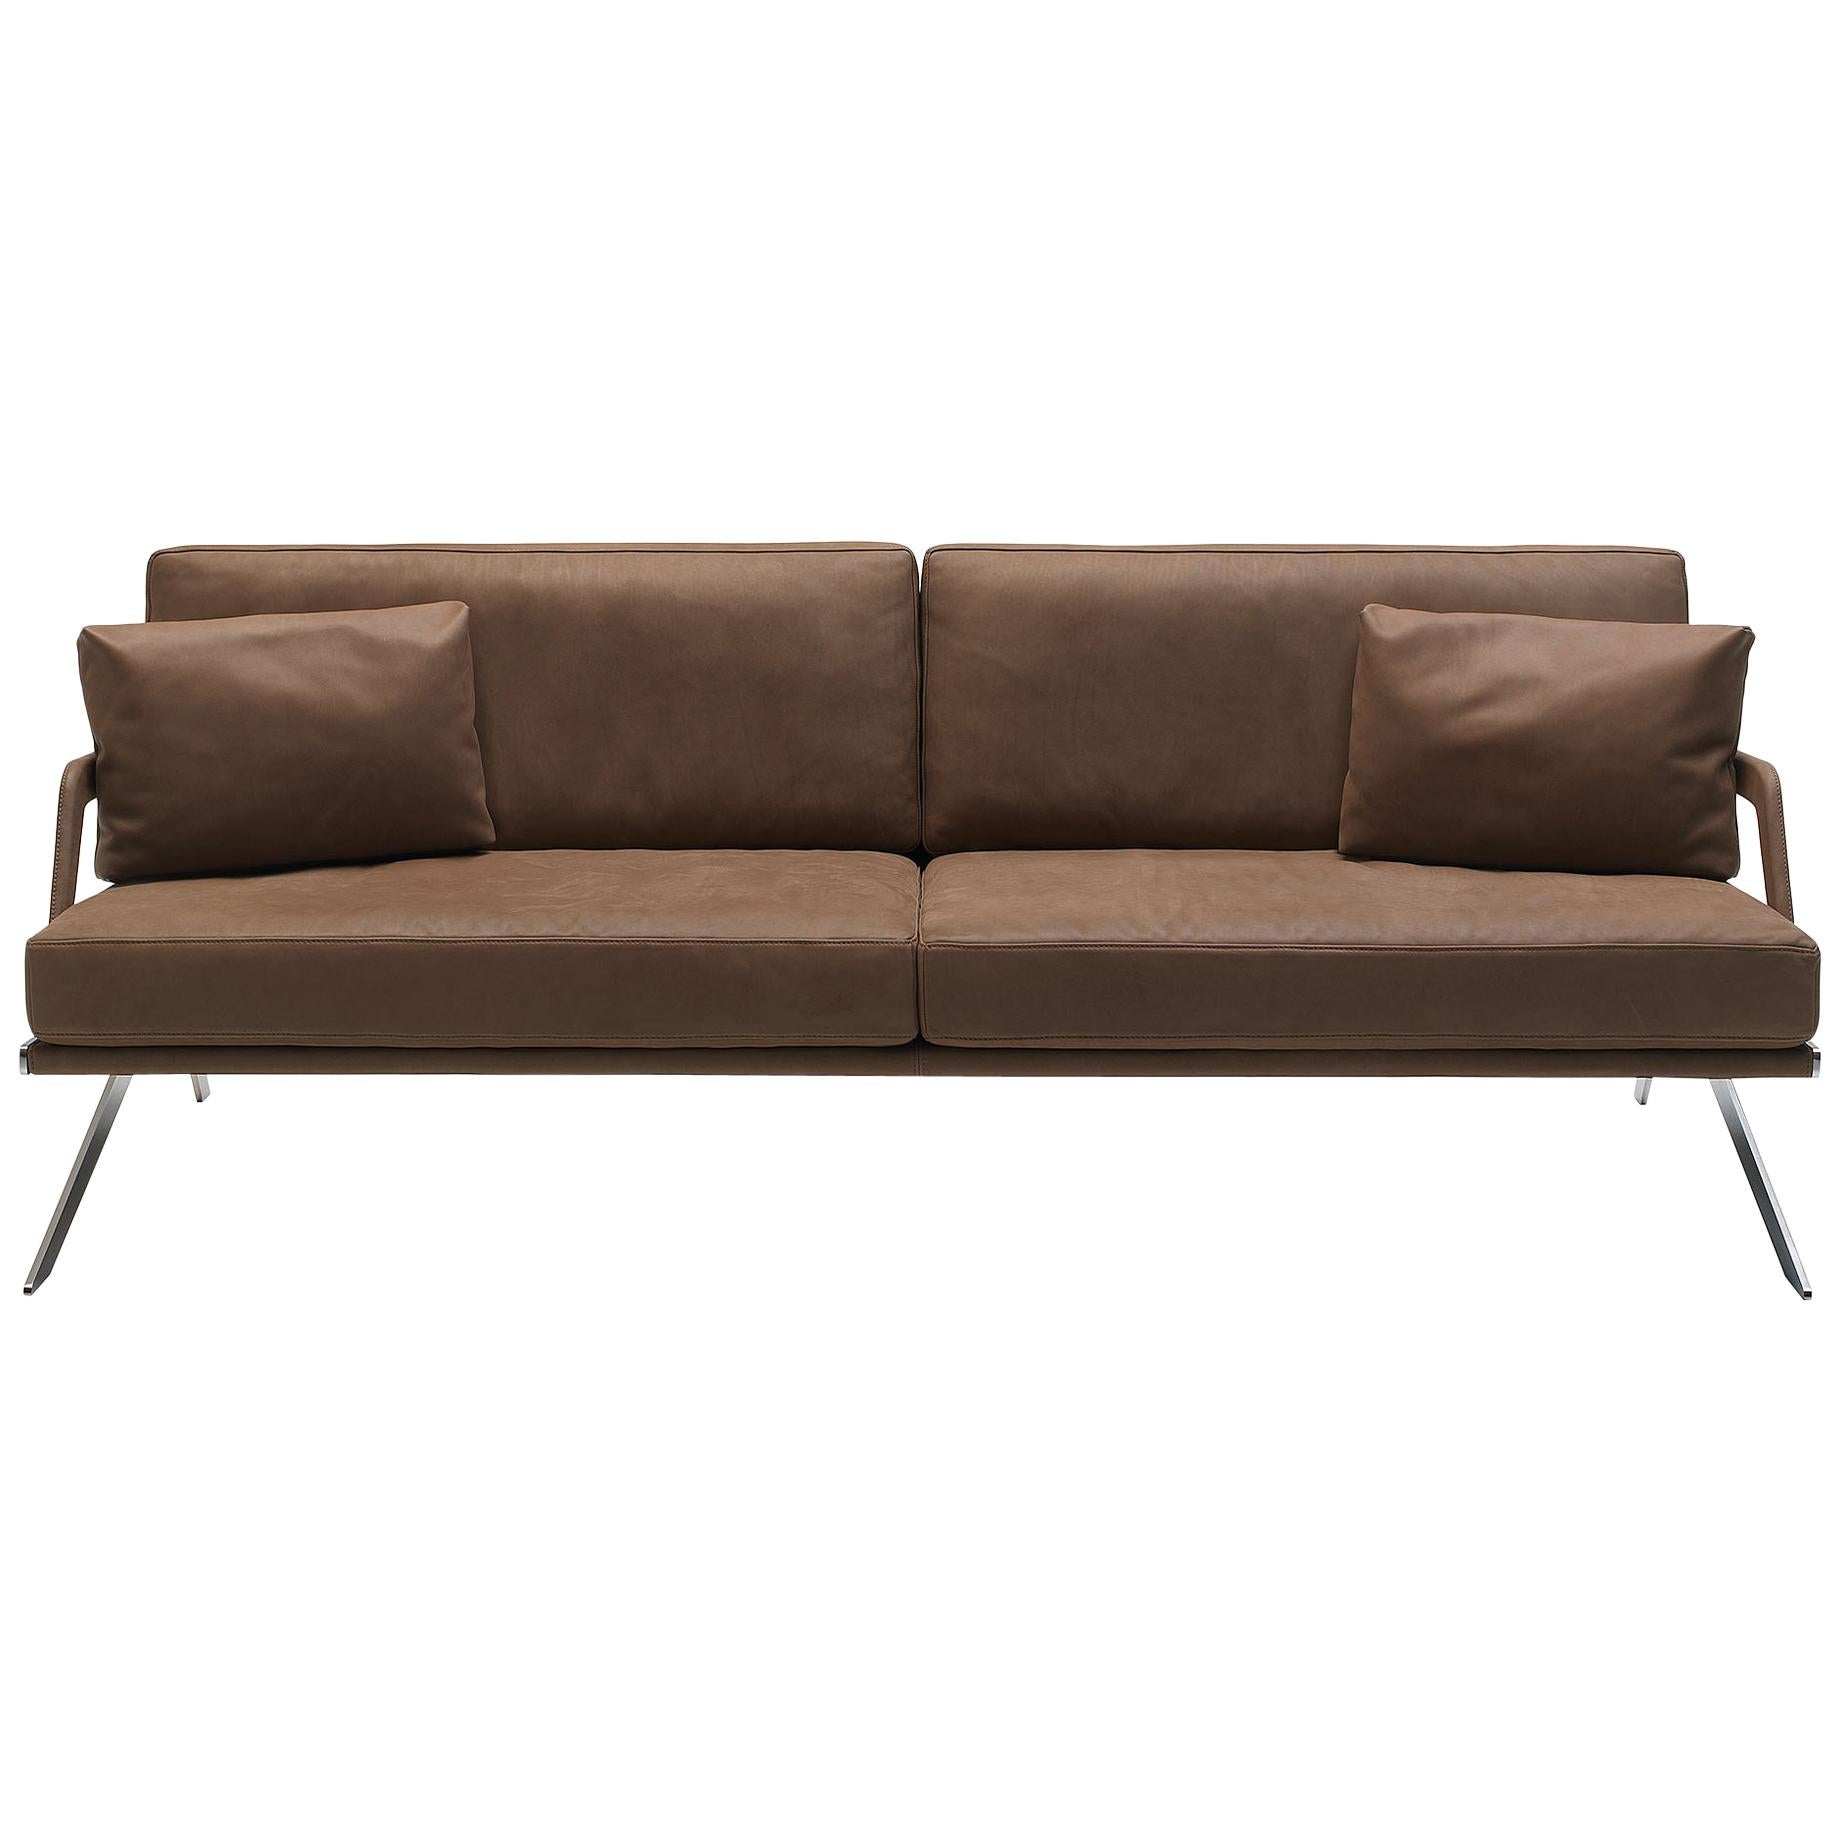 De Sede DS-60/03 Sofa in Brown Leather Upholstery by Gordon Guillaumier